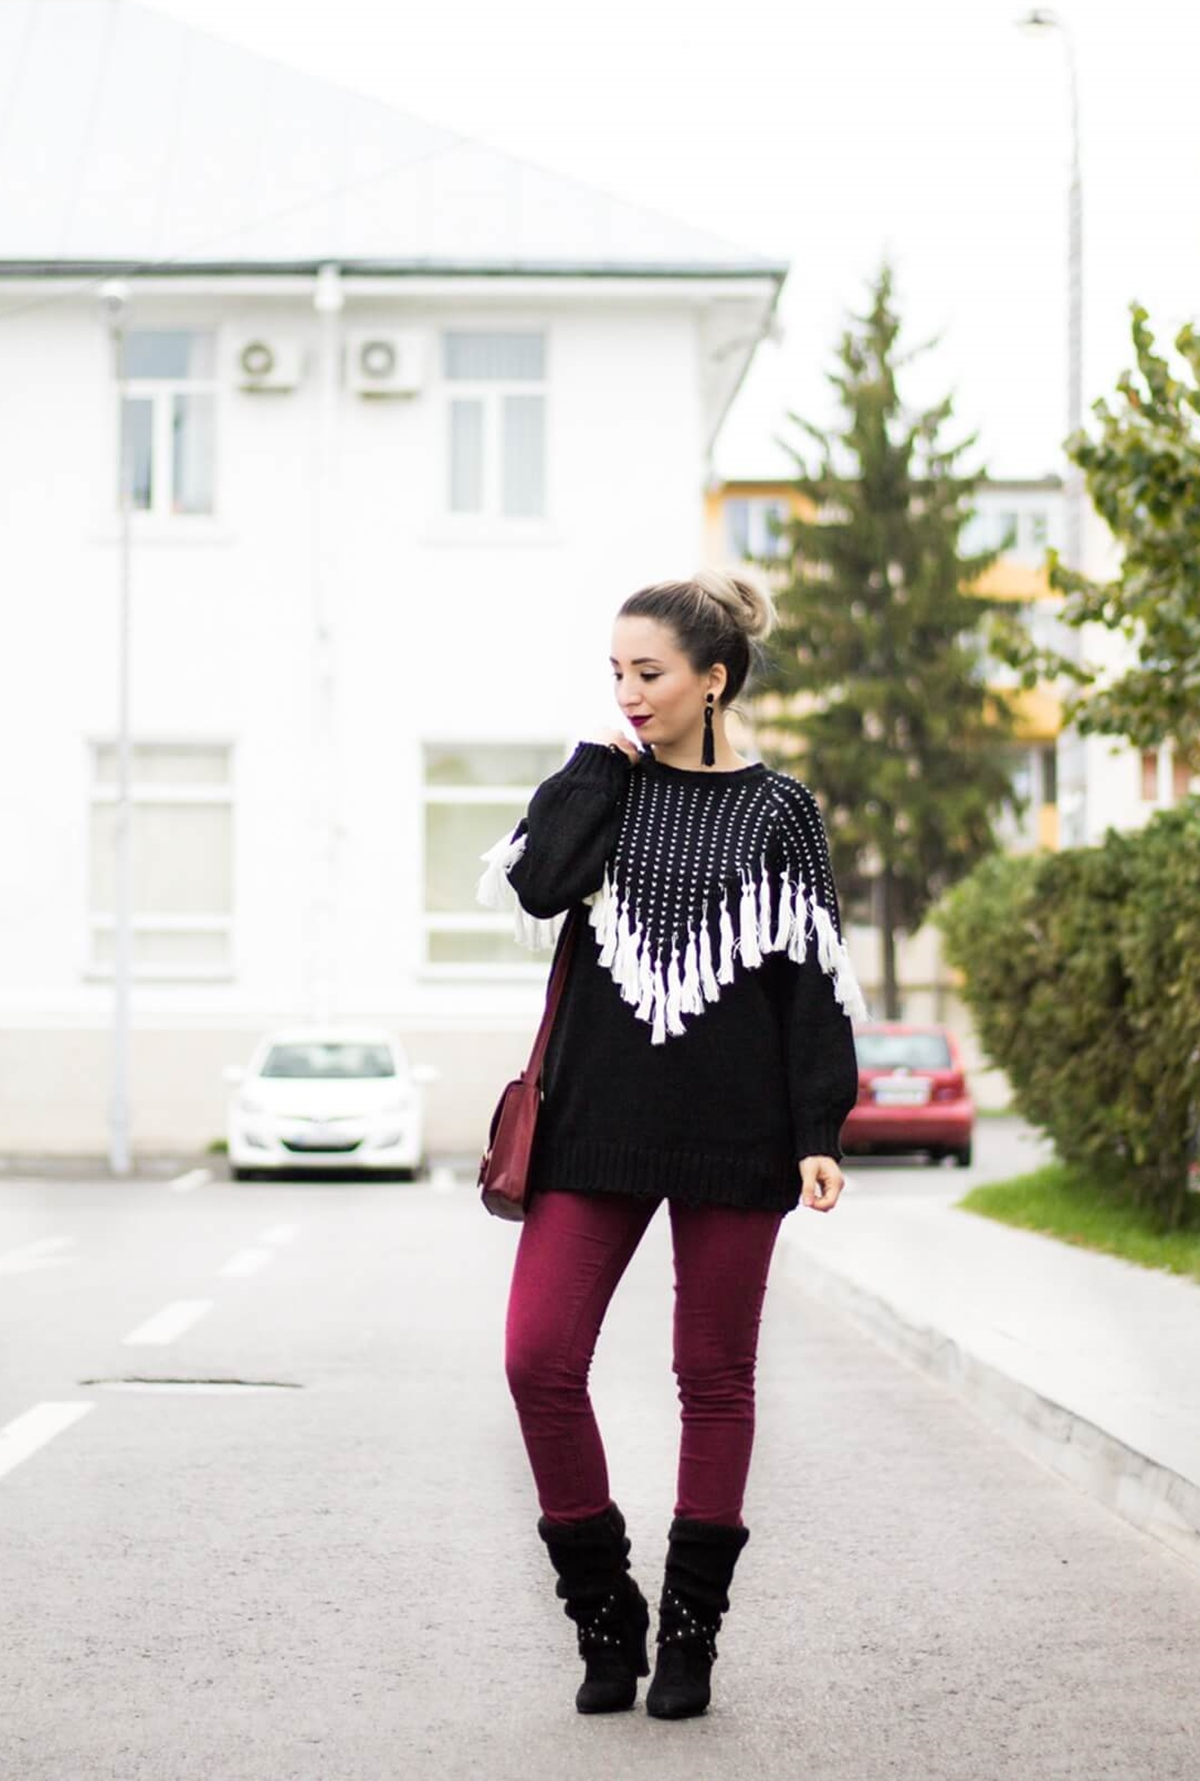 Street style: tassels sweater, black and white, burgundy skinny jeans, pants, burgundy bag, tassel earrings, zaful, fashion blogger andreea ristea, black boots